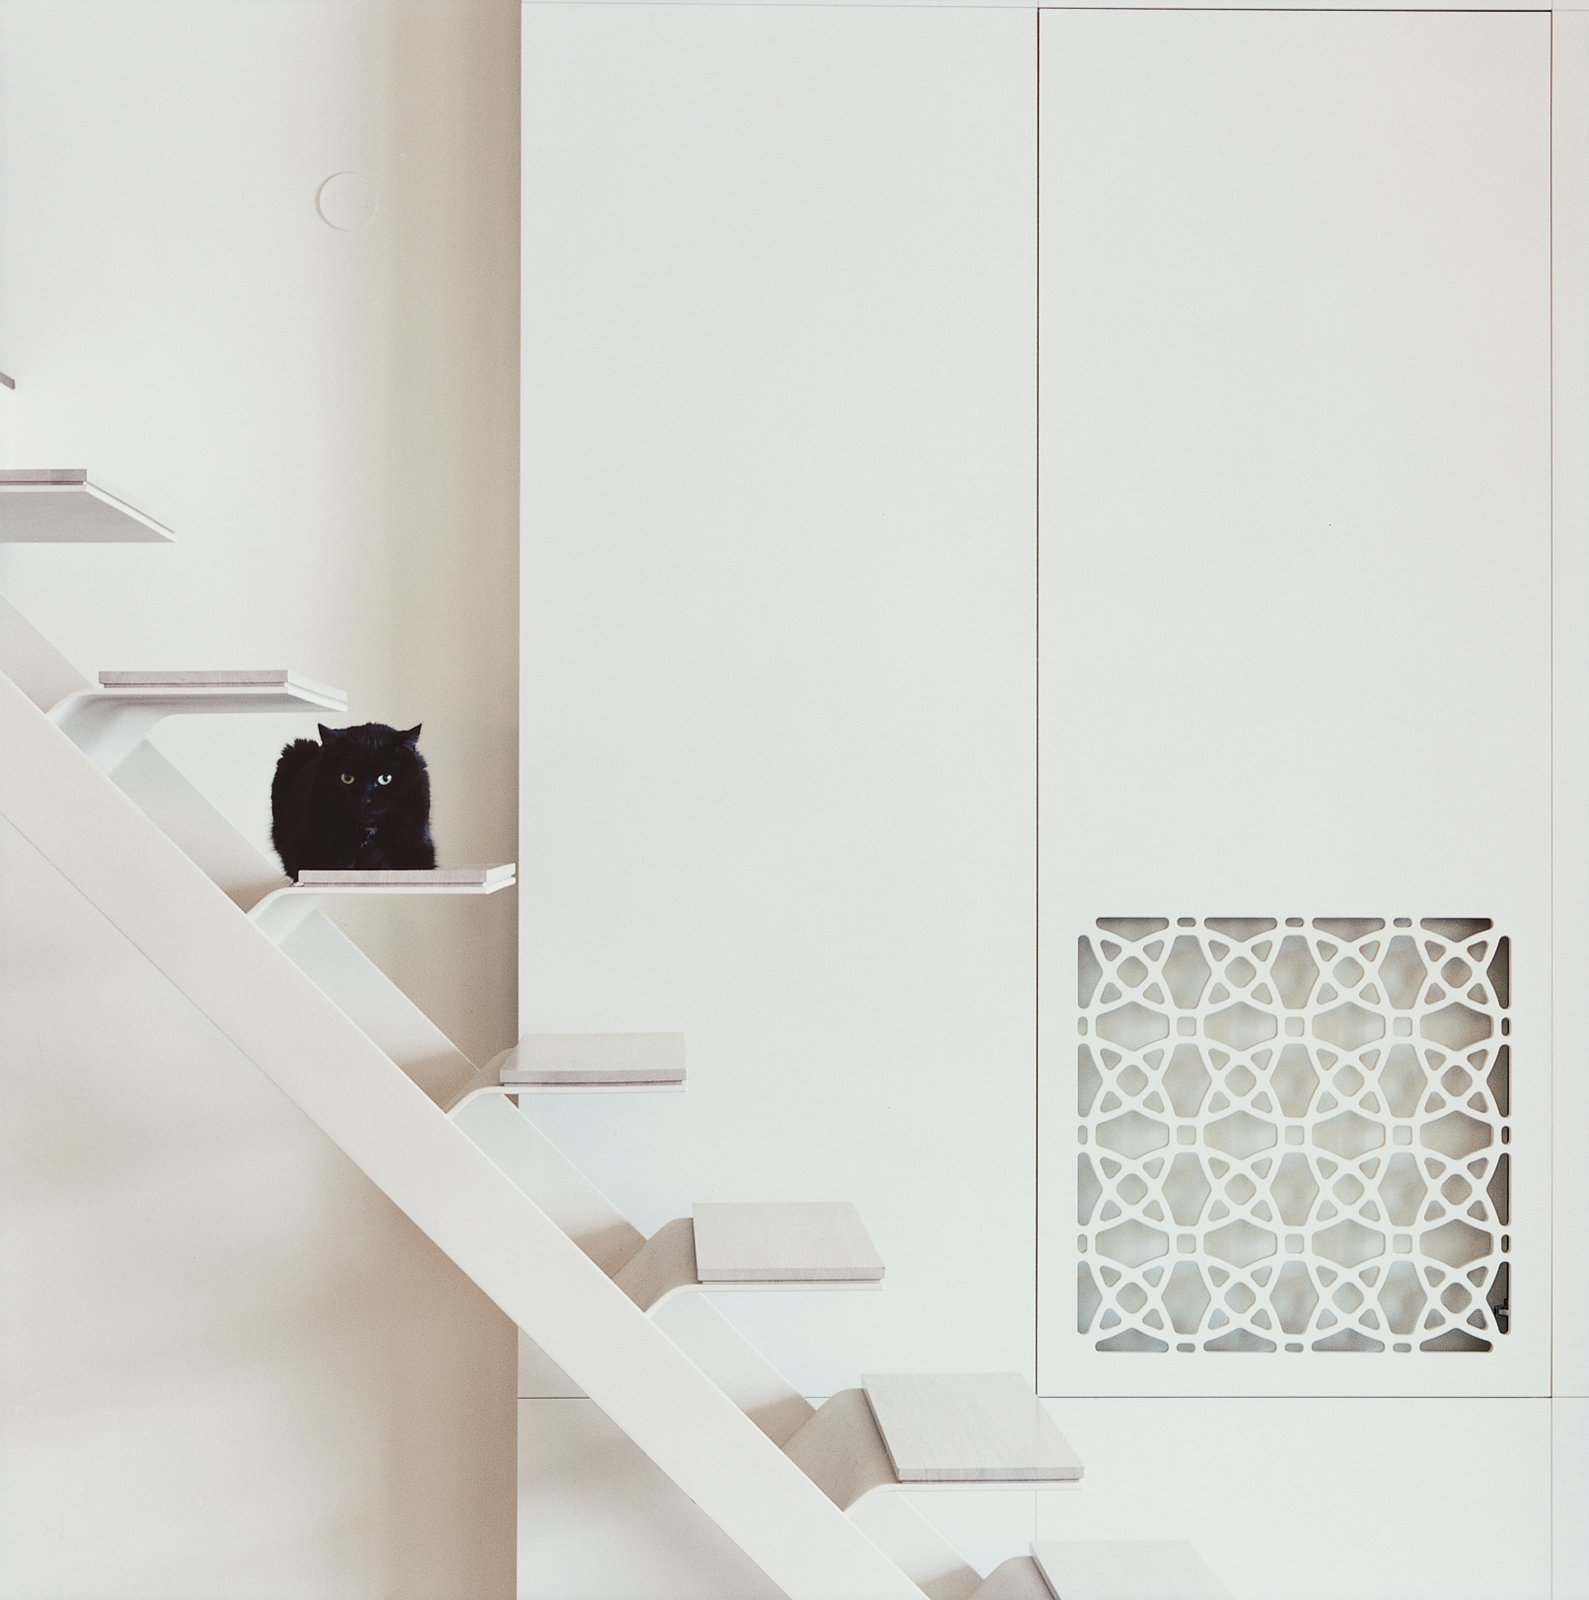 Articles about look staircases on Dwell.com